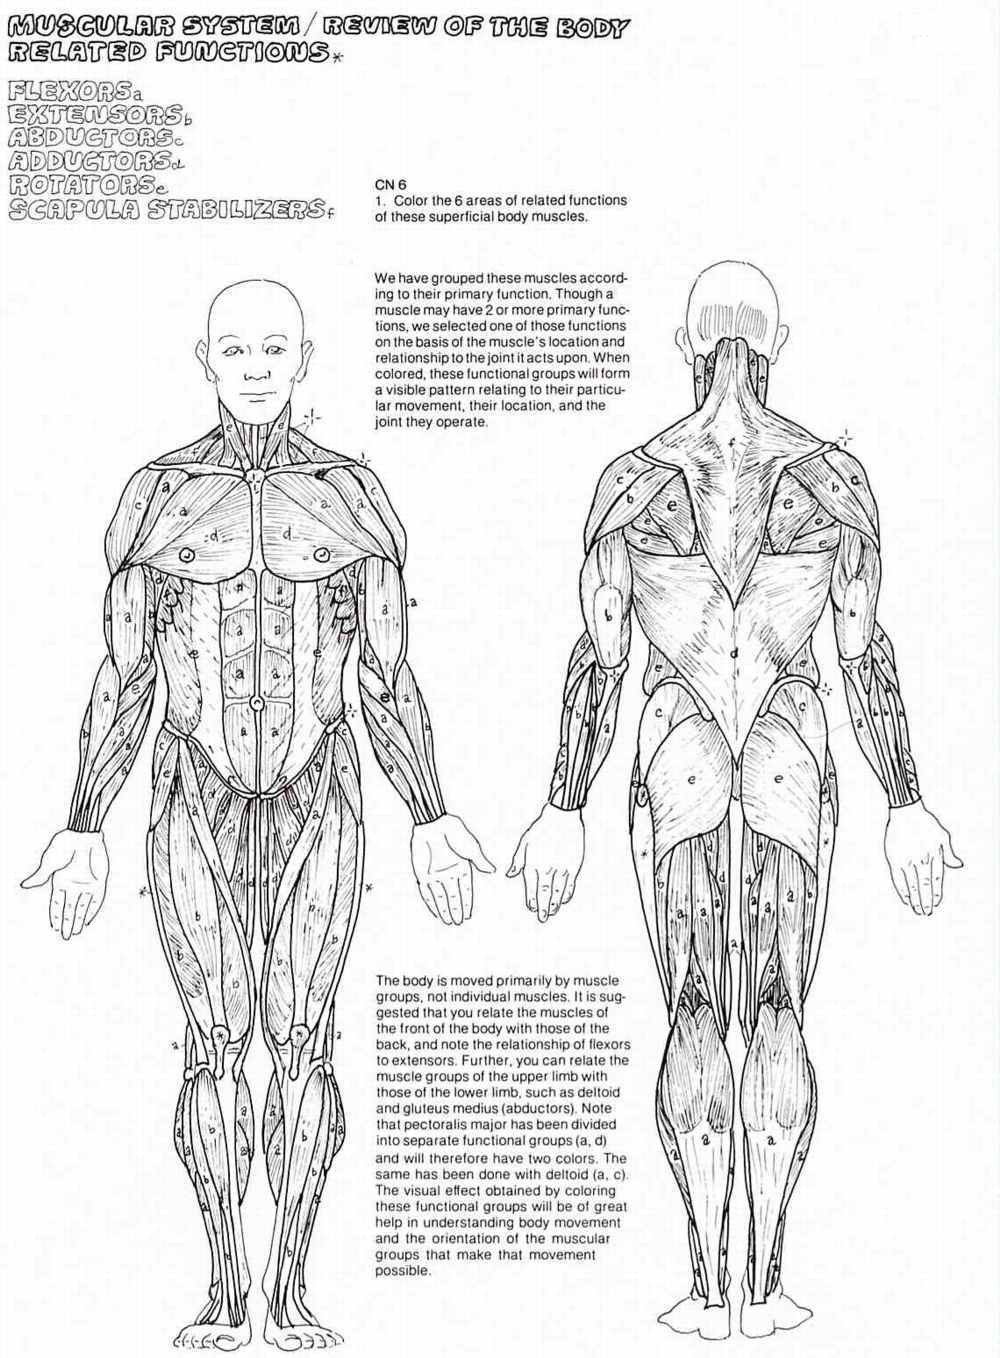 College Anatomy Worksheets 4tb4mbrjc Freerintable Anatomy Coloringages for Adults